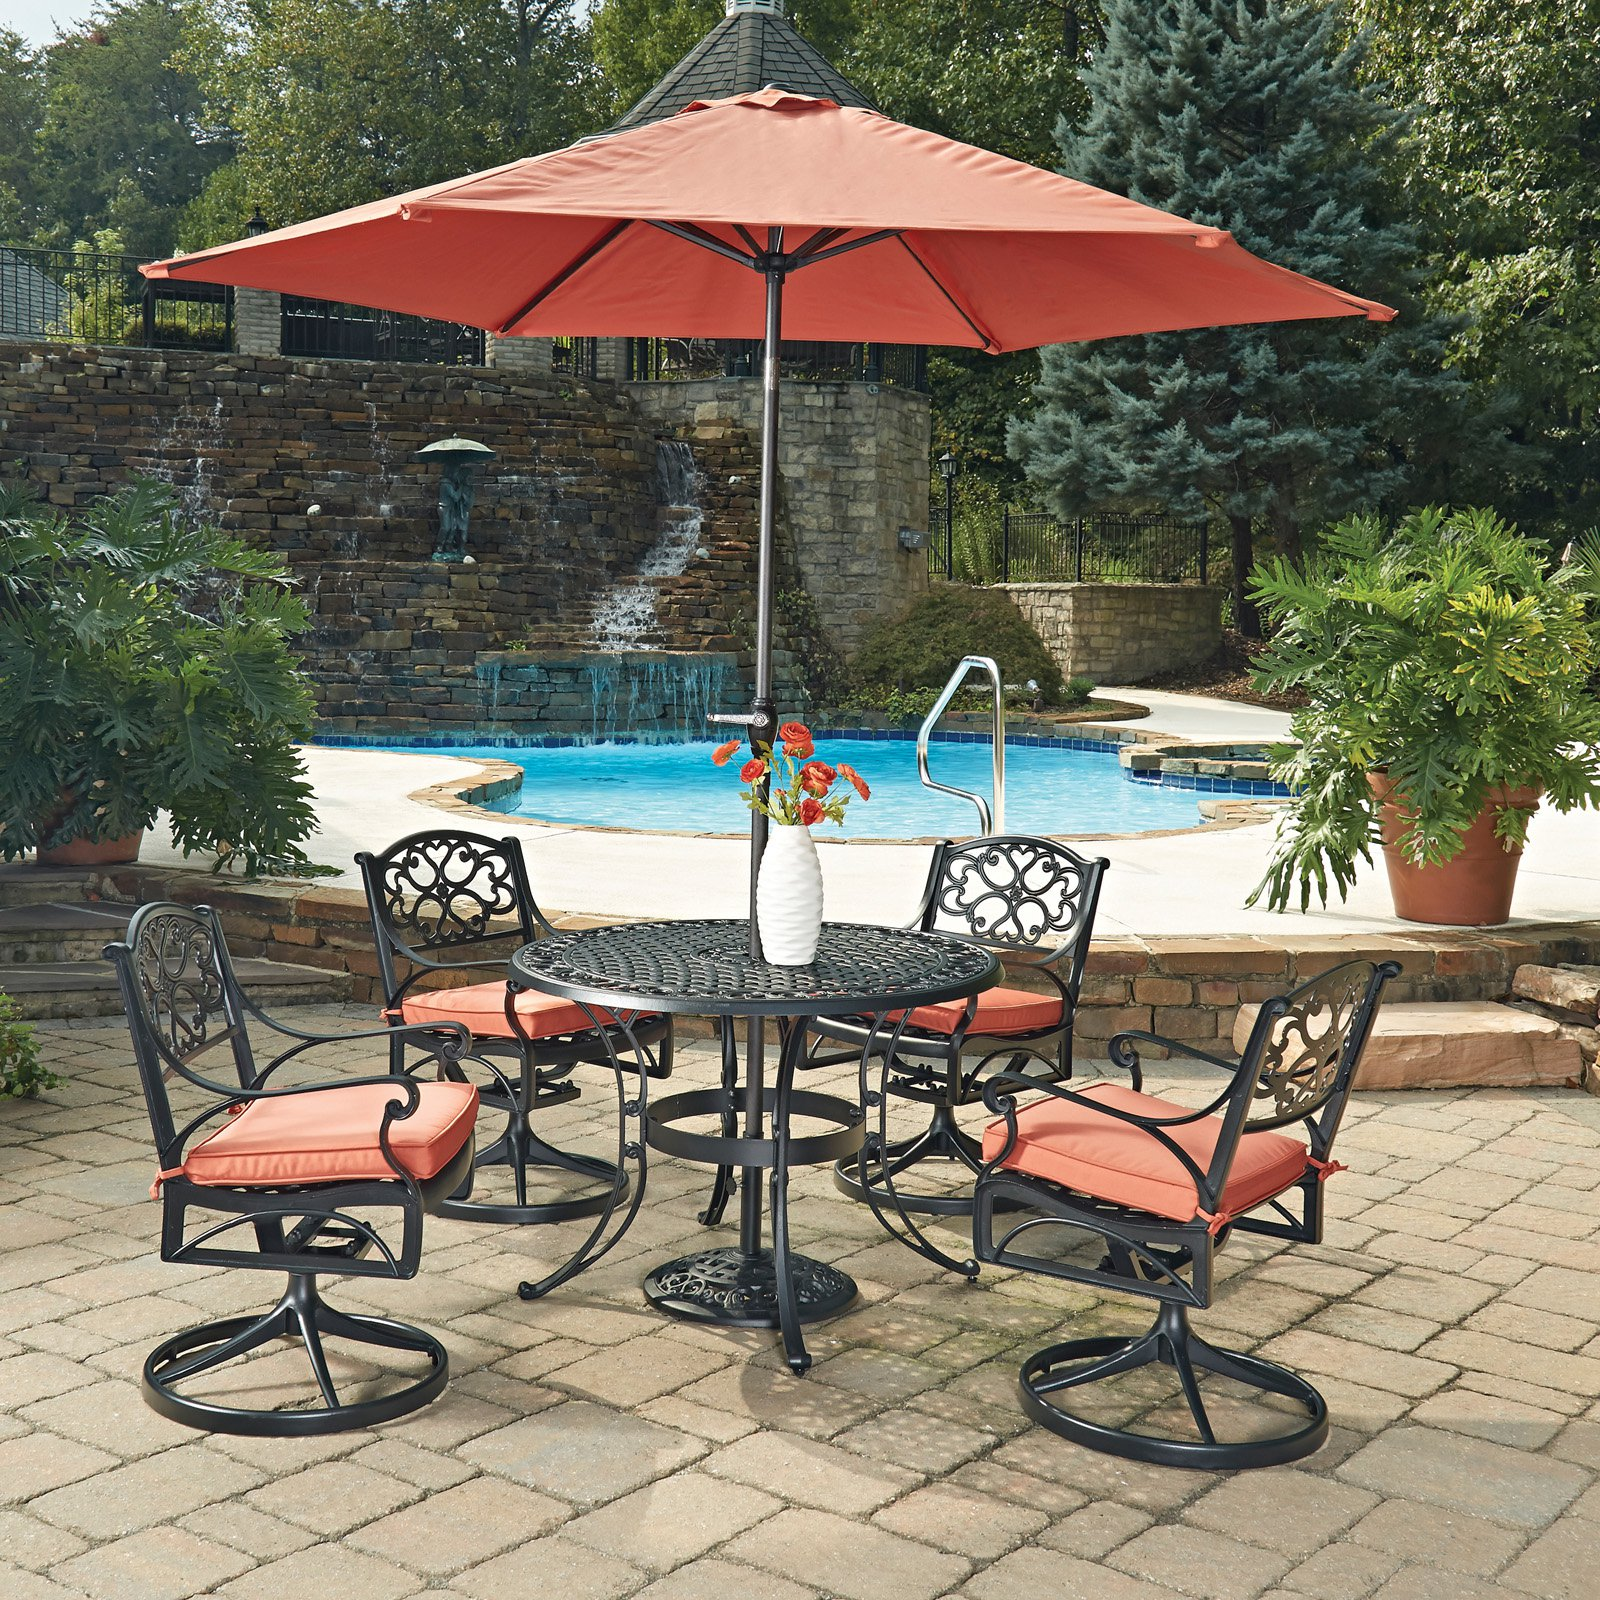 Biscayne Black Round 7 Pc Outdoor Dining Table, 2 Arm Chairs, 2 Swivel Rocking Chairs with Cushions & Umbrella with Base